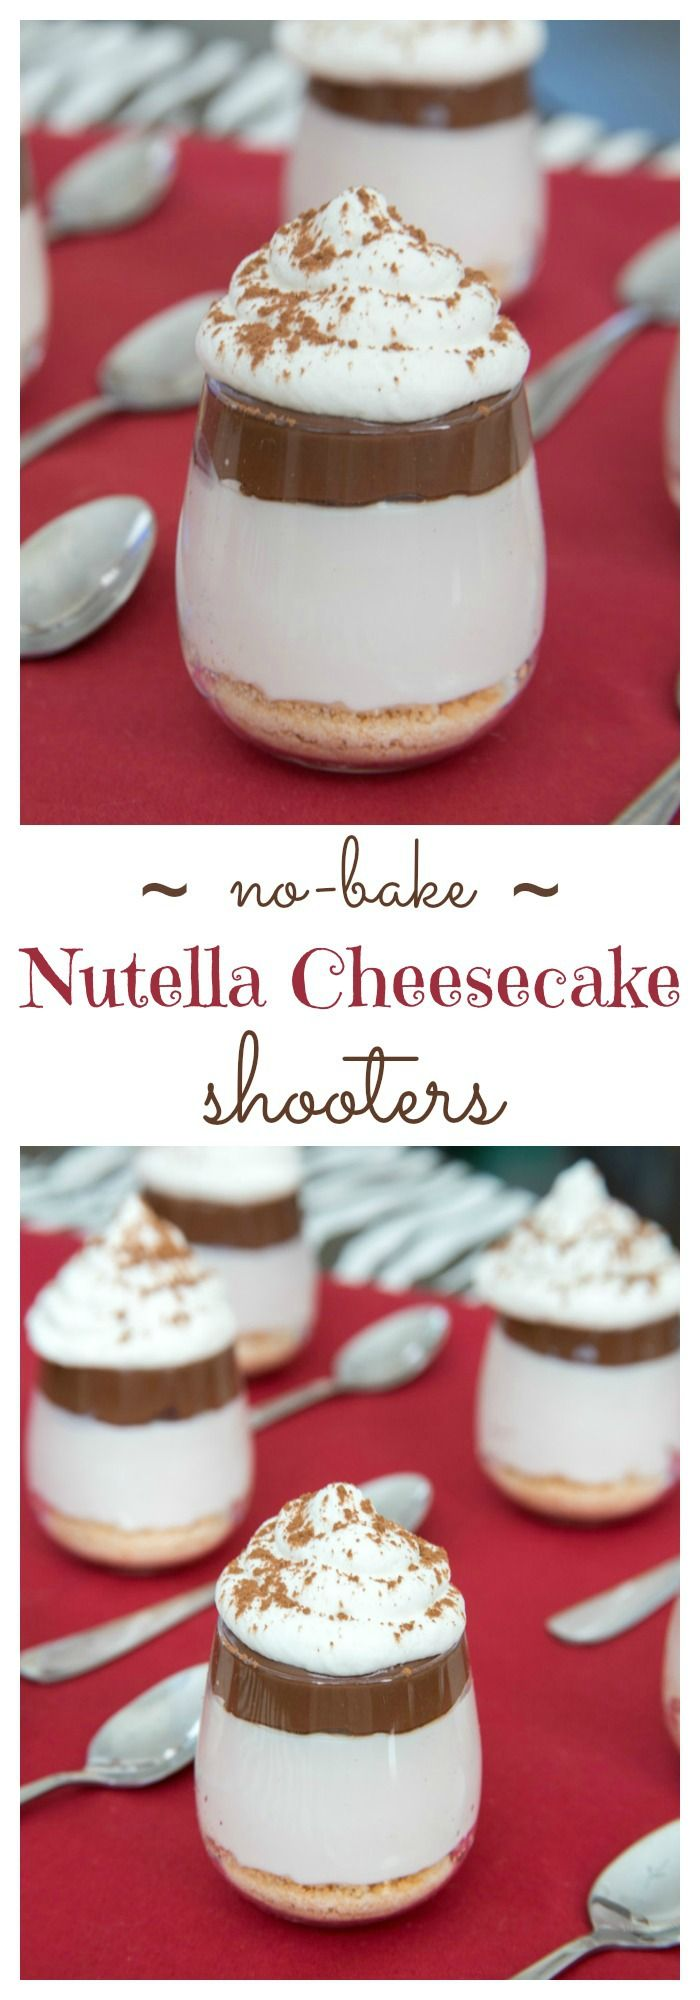 No-Bake Nutella Cheesecake Shooters | cupcakesandkalechips.com | #chocolate #dessert #glutenfree option